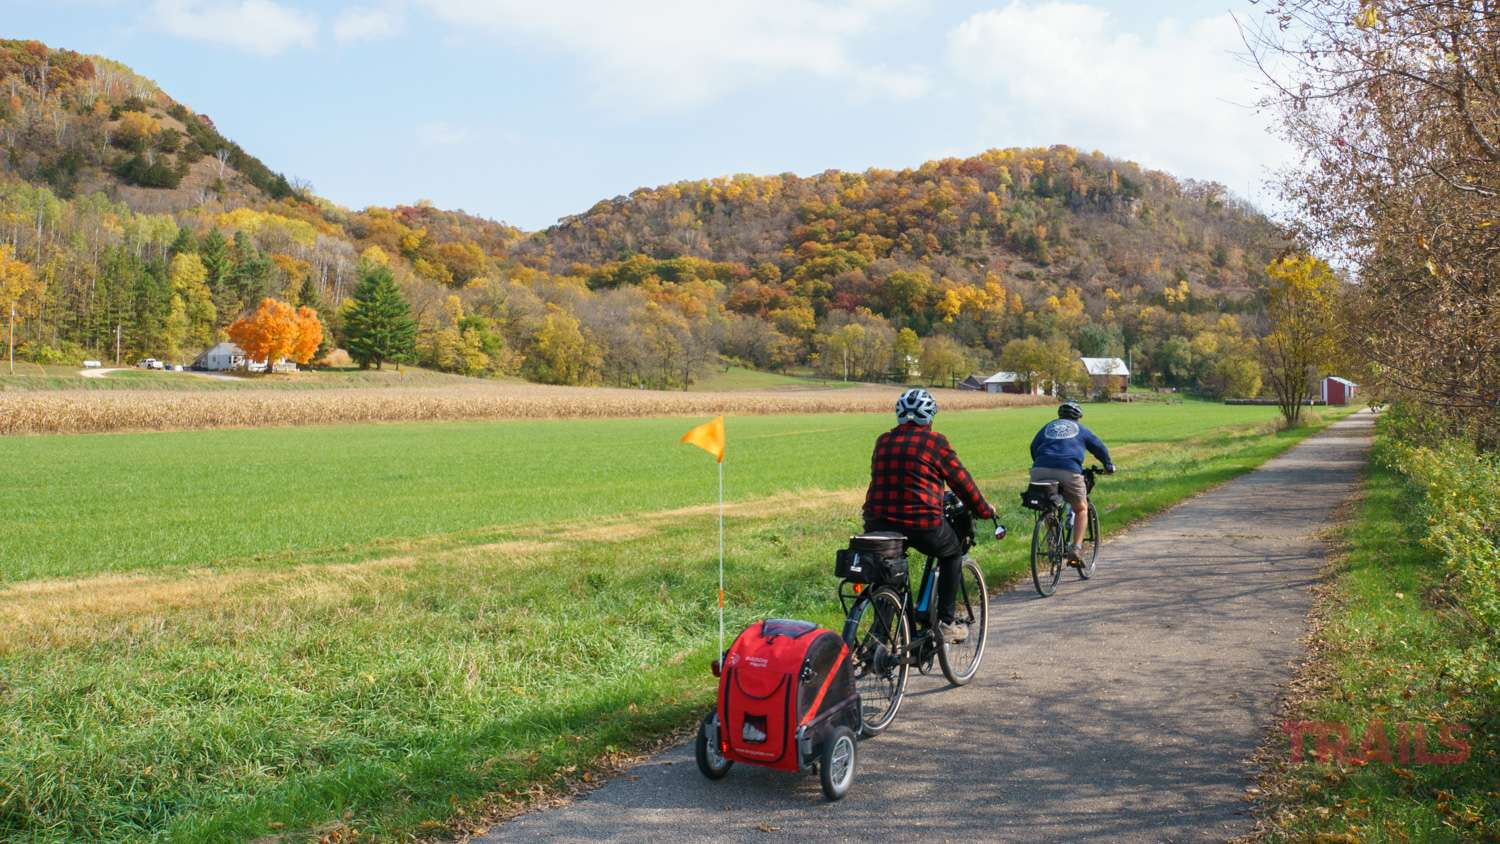 Two people ride bikes on a trail